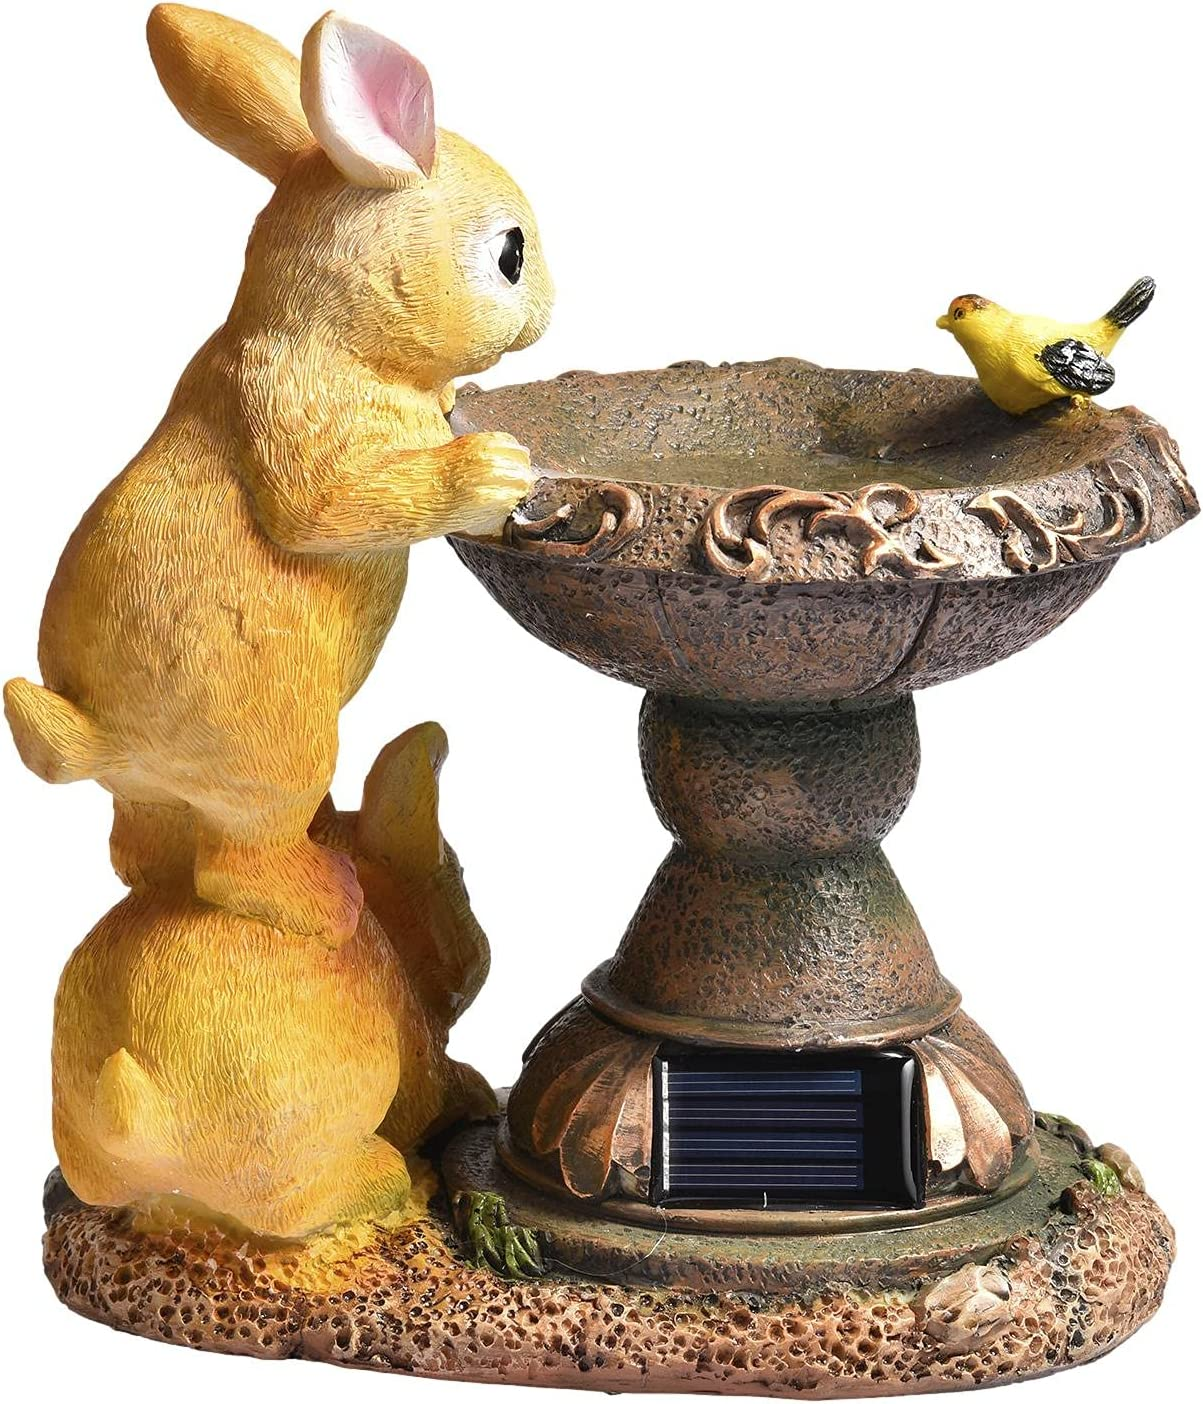 Rabbit Solar Garden Statue Online Super beauty product restock quality top! limited product Waterpro Powered Light